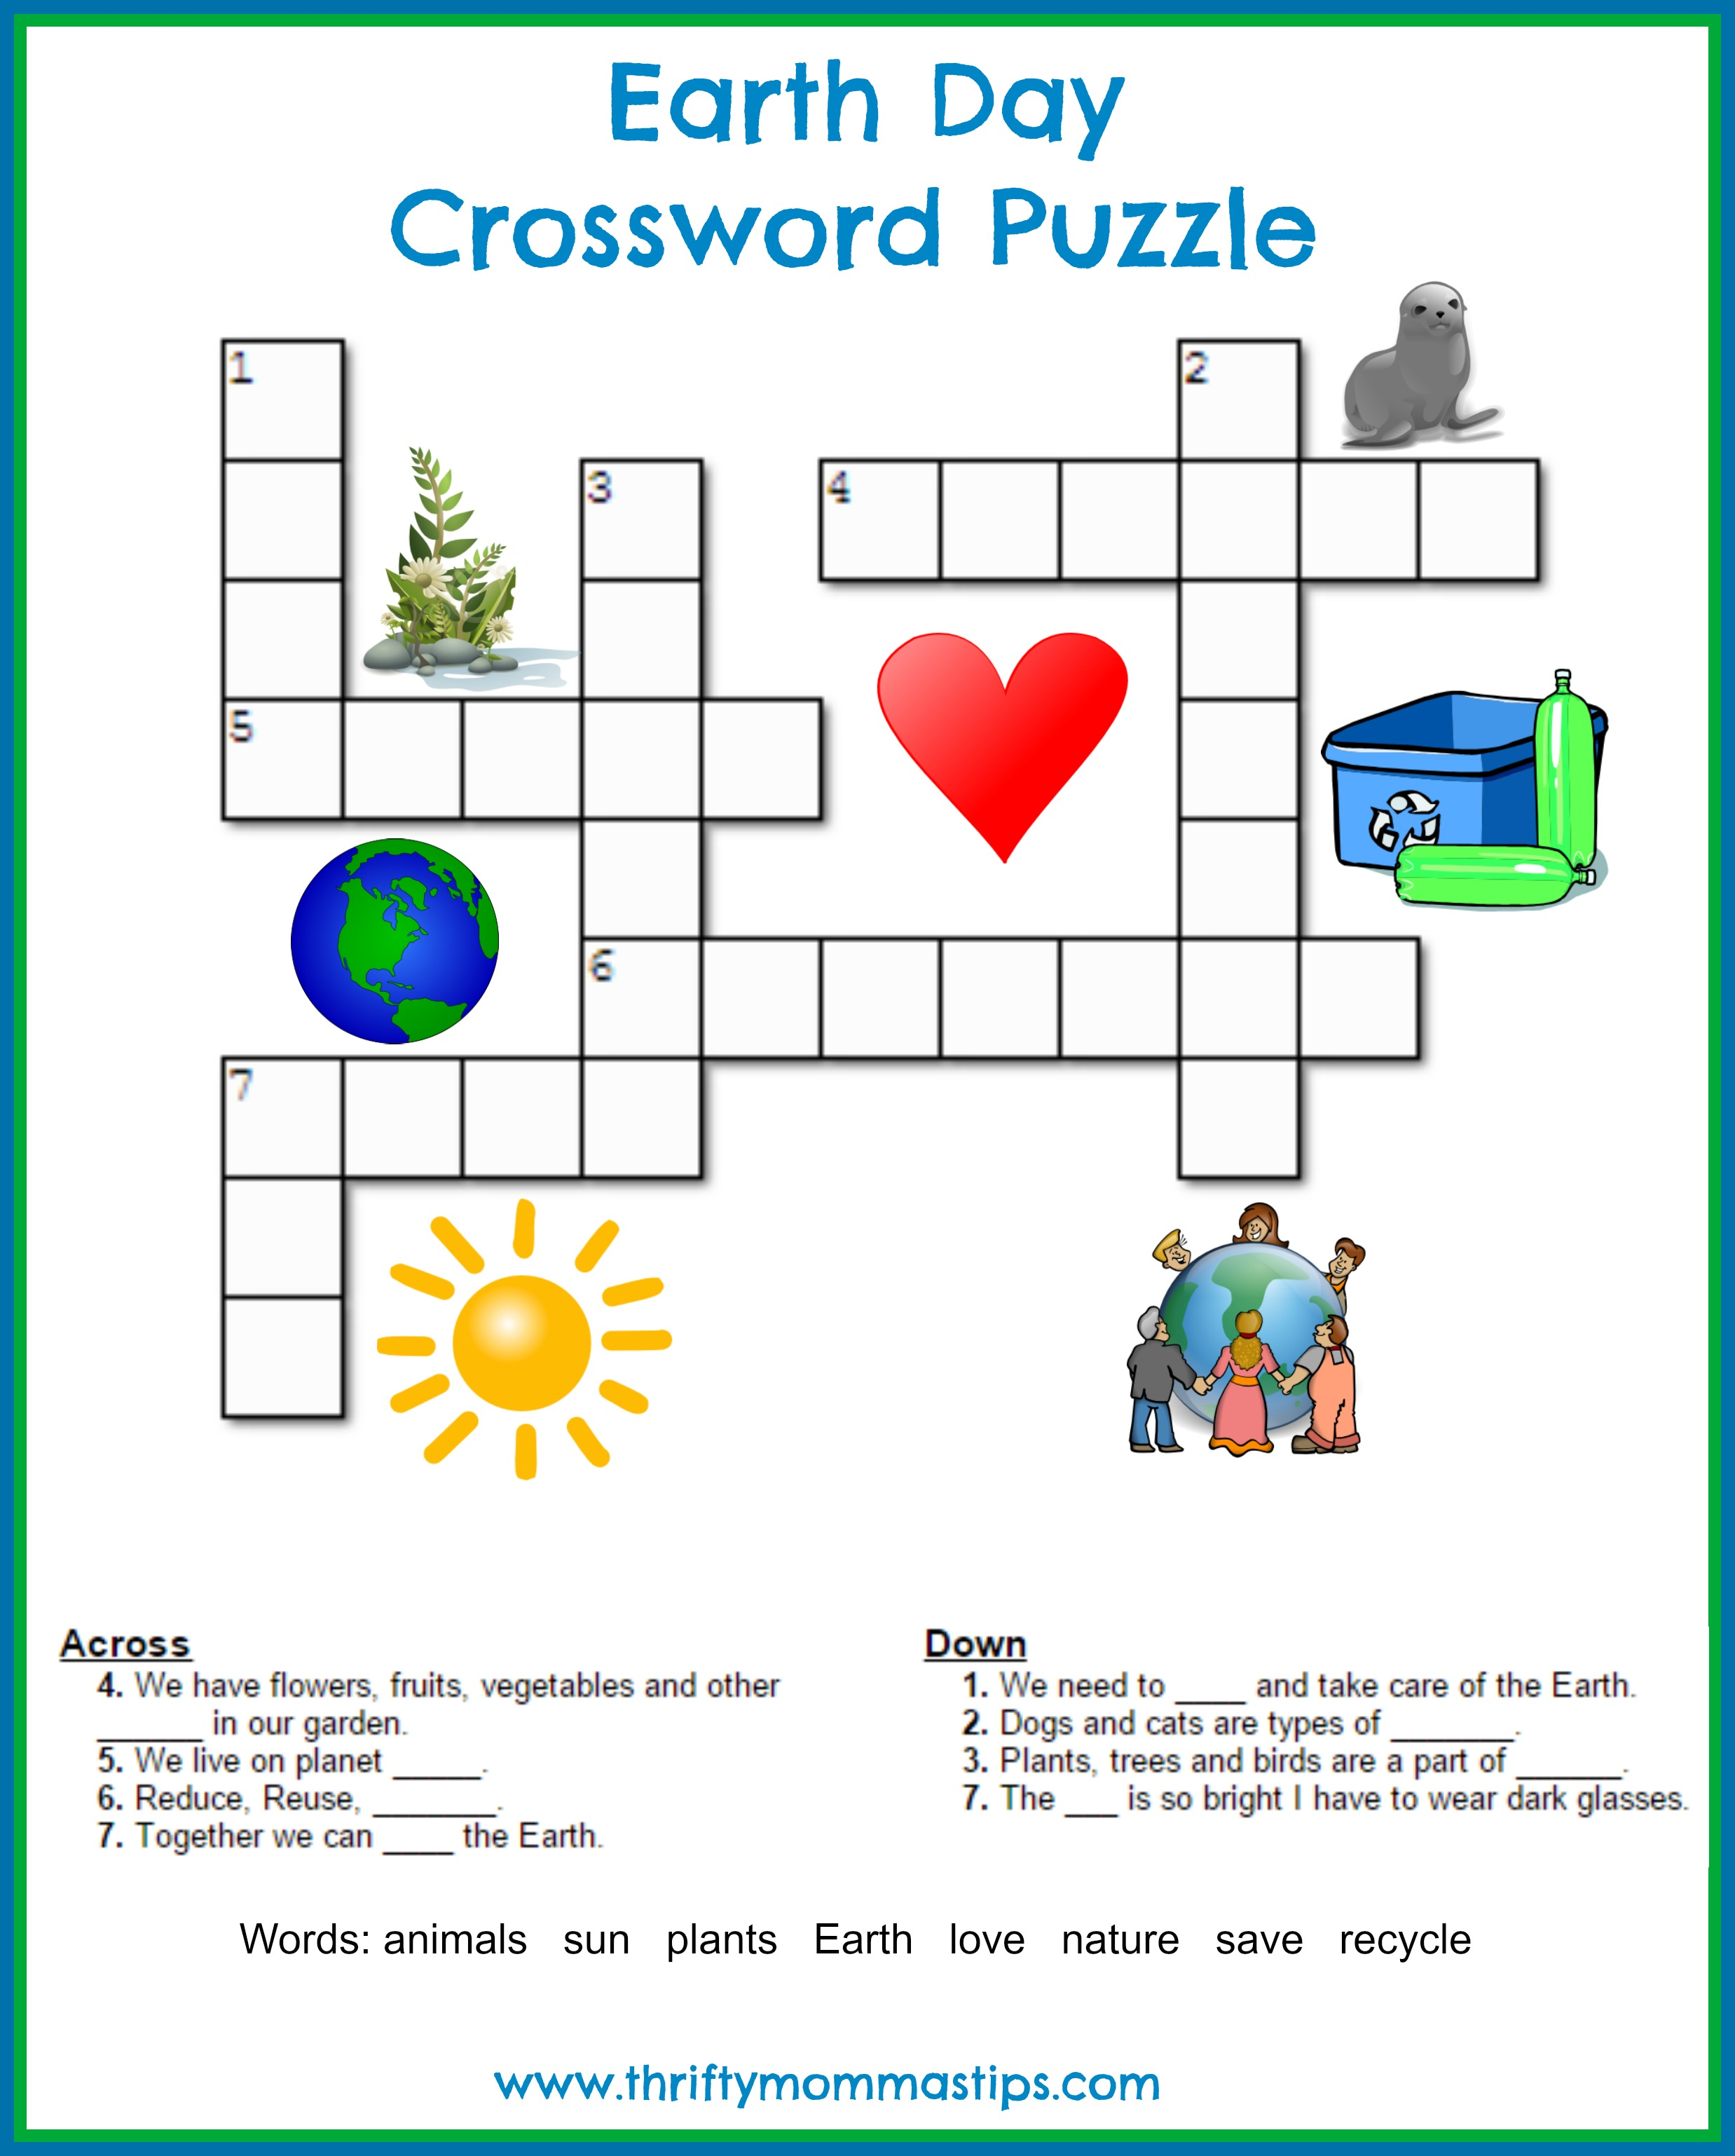 Earth Day Crossword Puzzle - Thrifty Mommas Tips